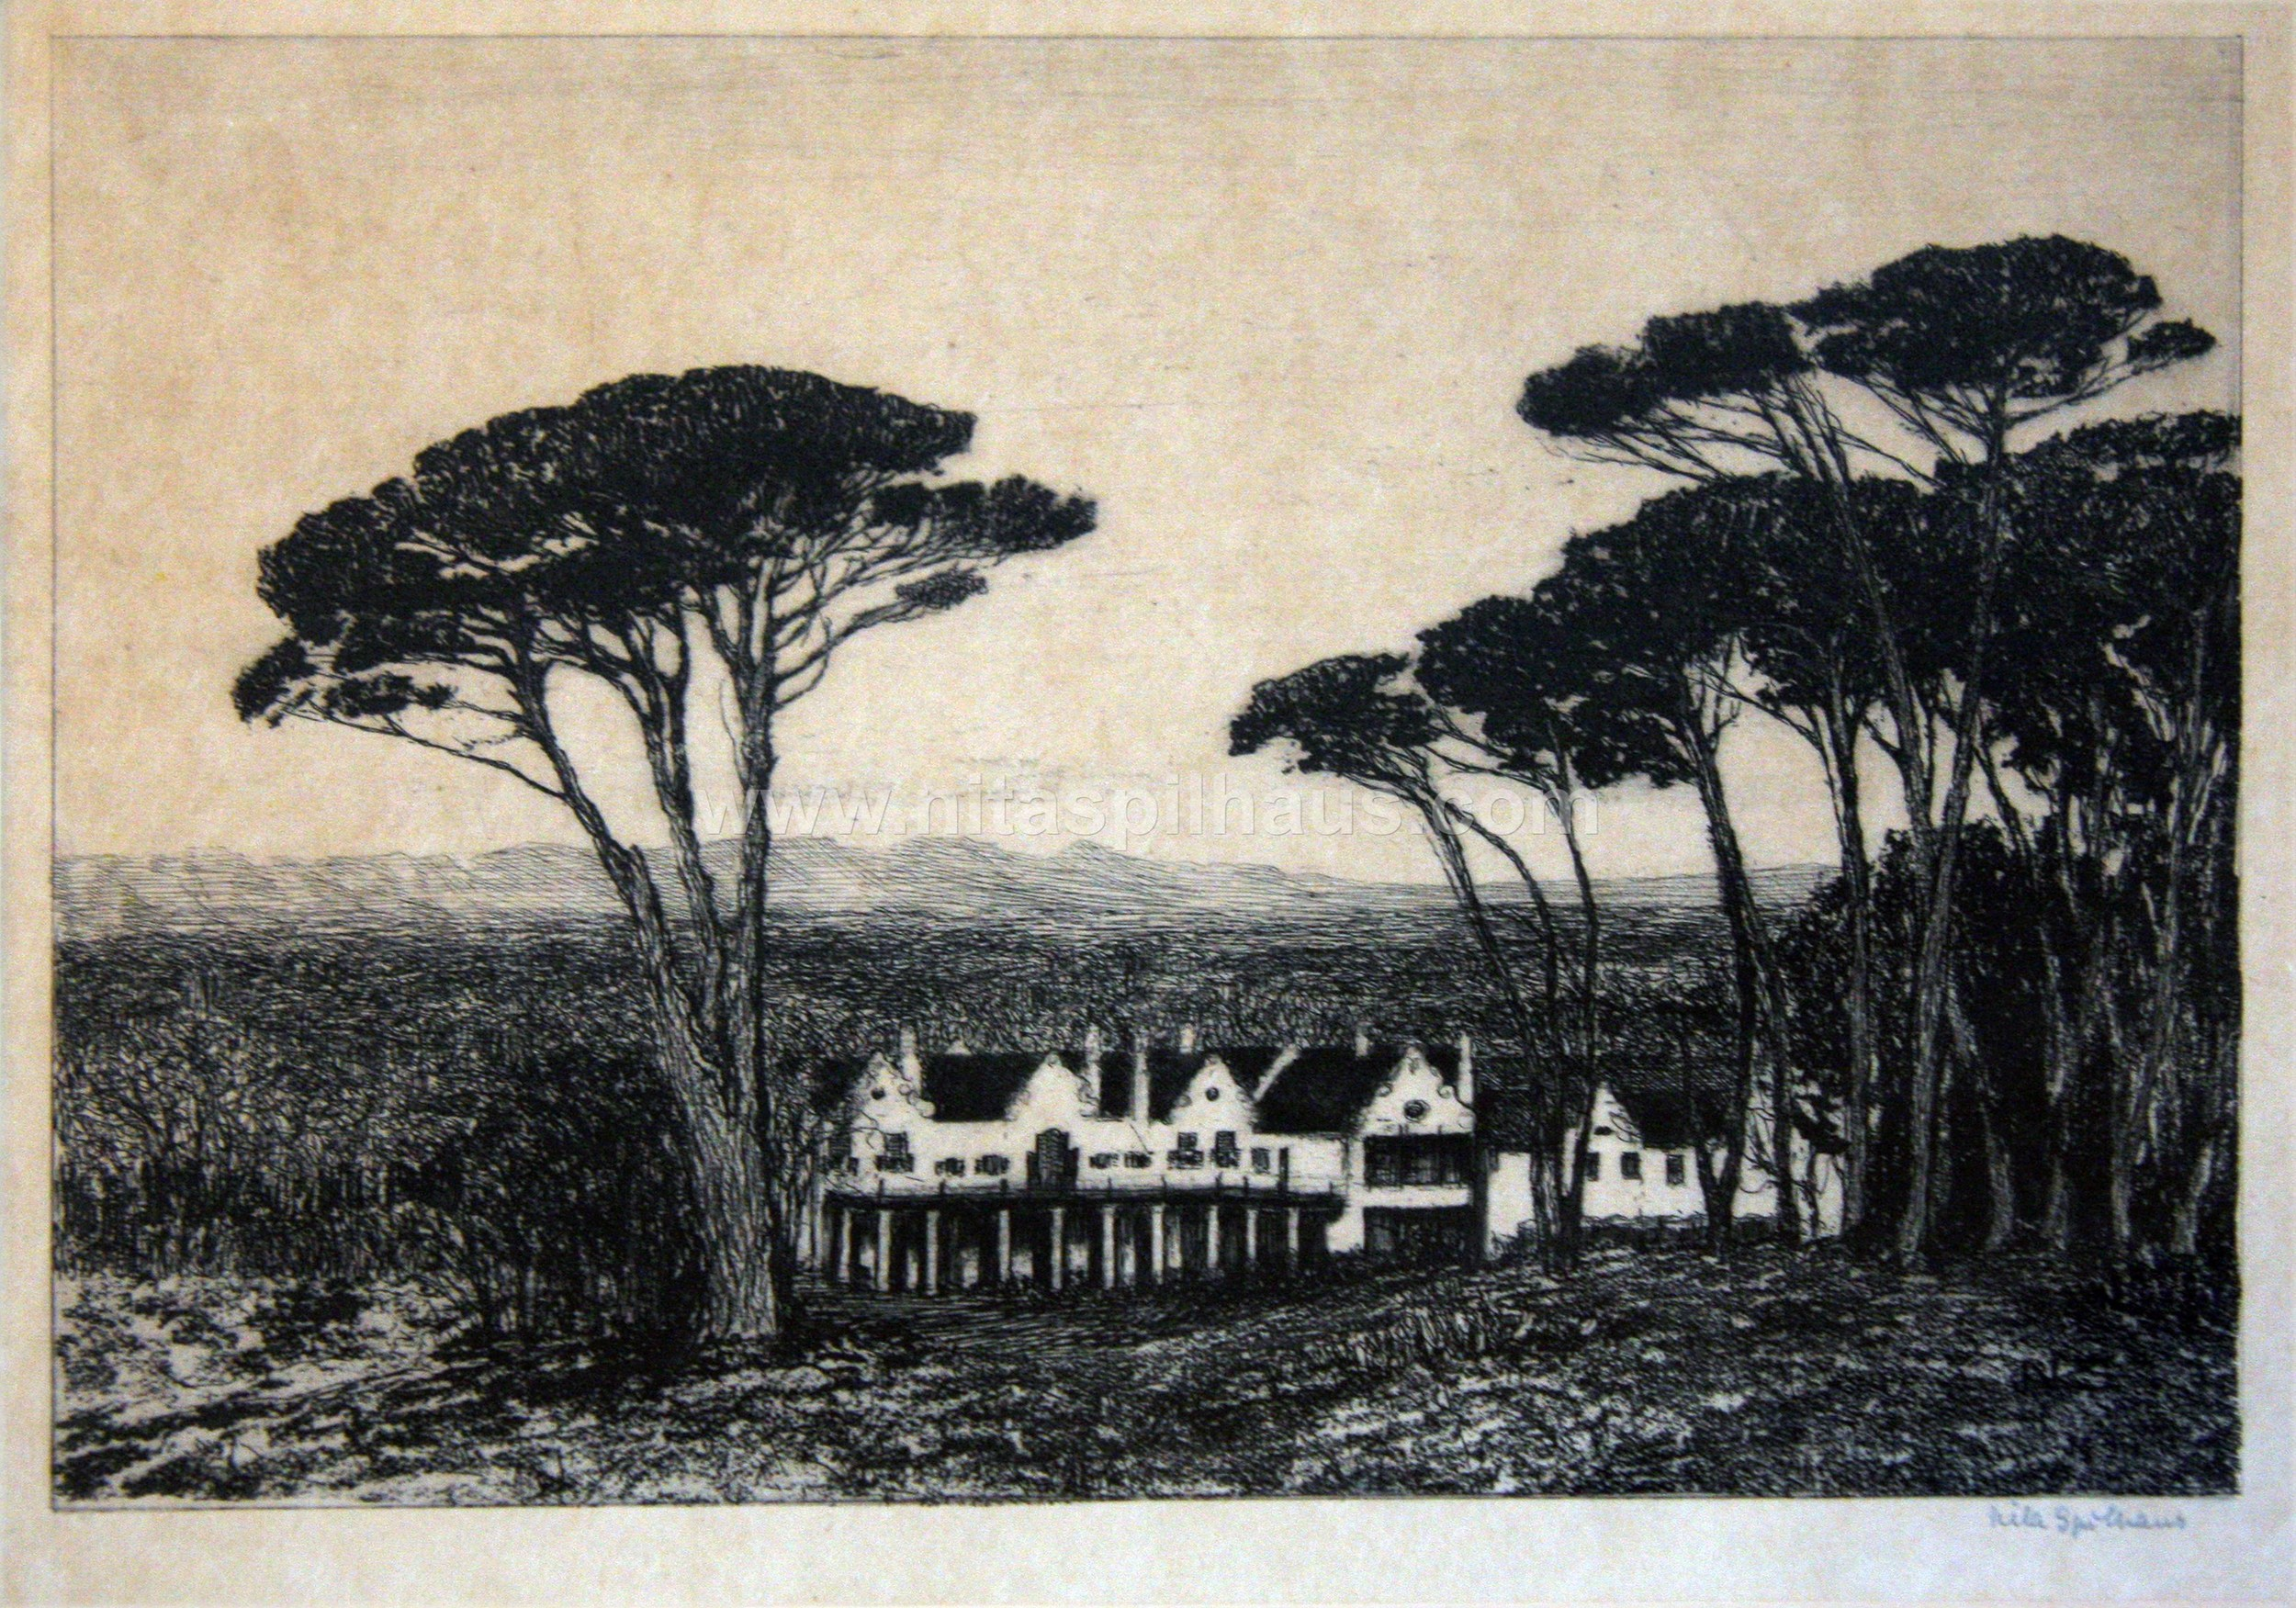 Groote Schuur, Etching Plate size 20.4 x 15.3 Collector 3